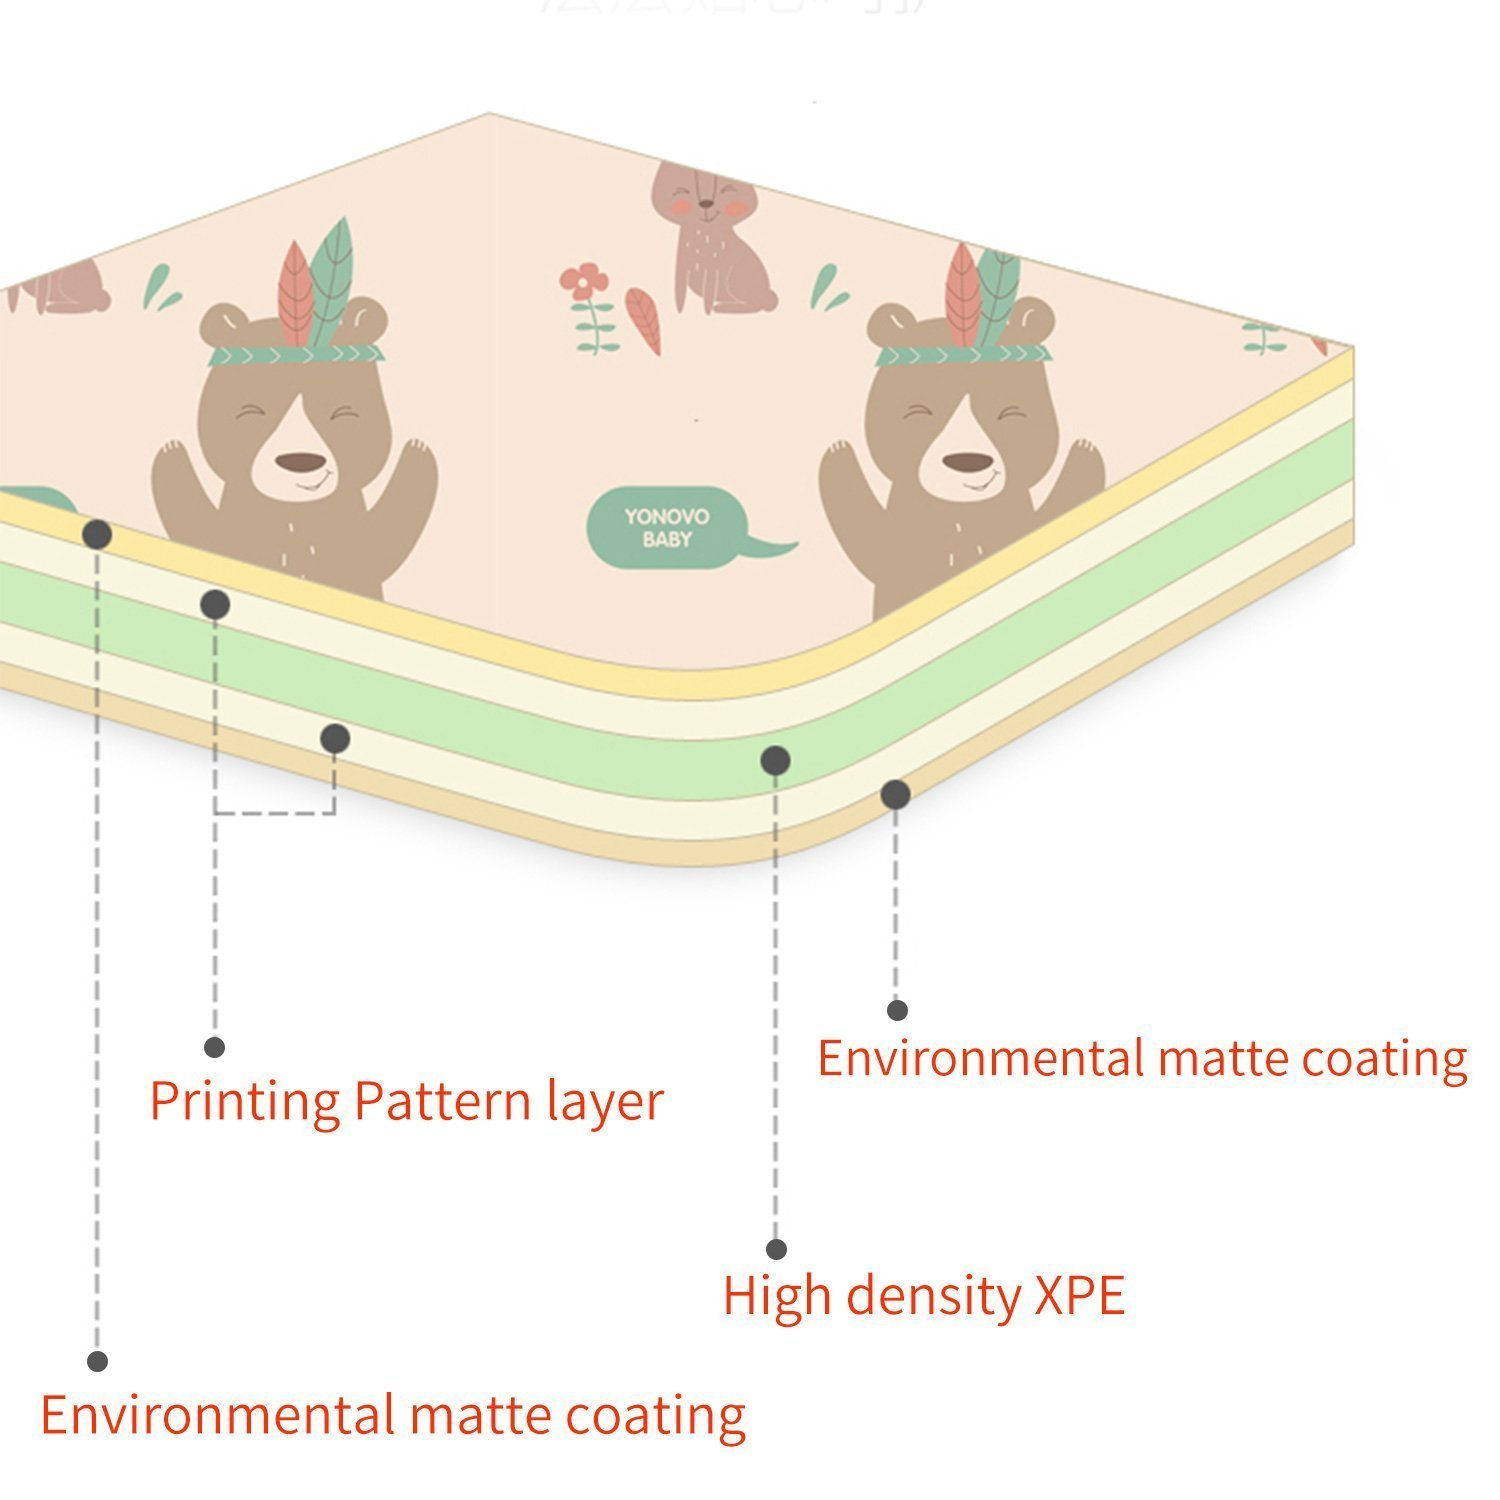 Material layers of the baby play mat including high density XPE and environmental matte coating